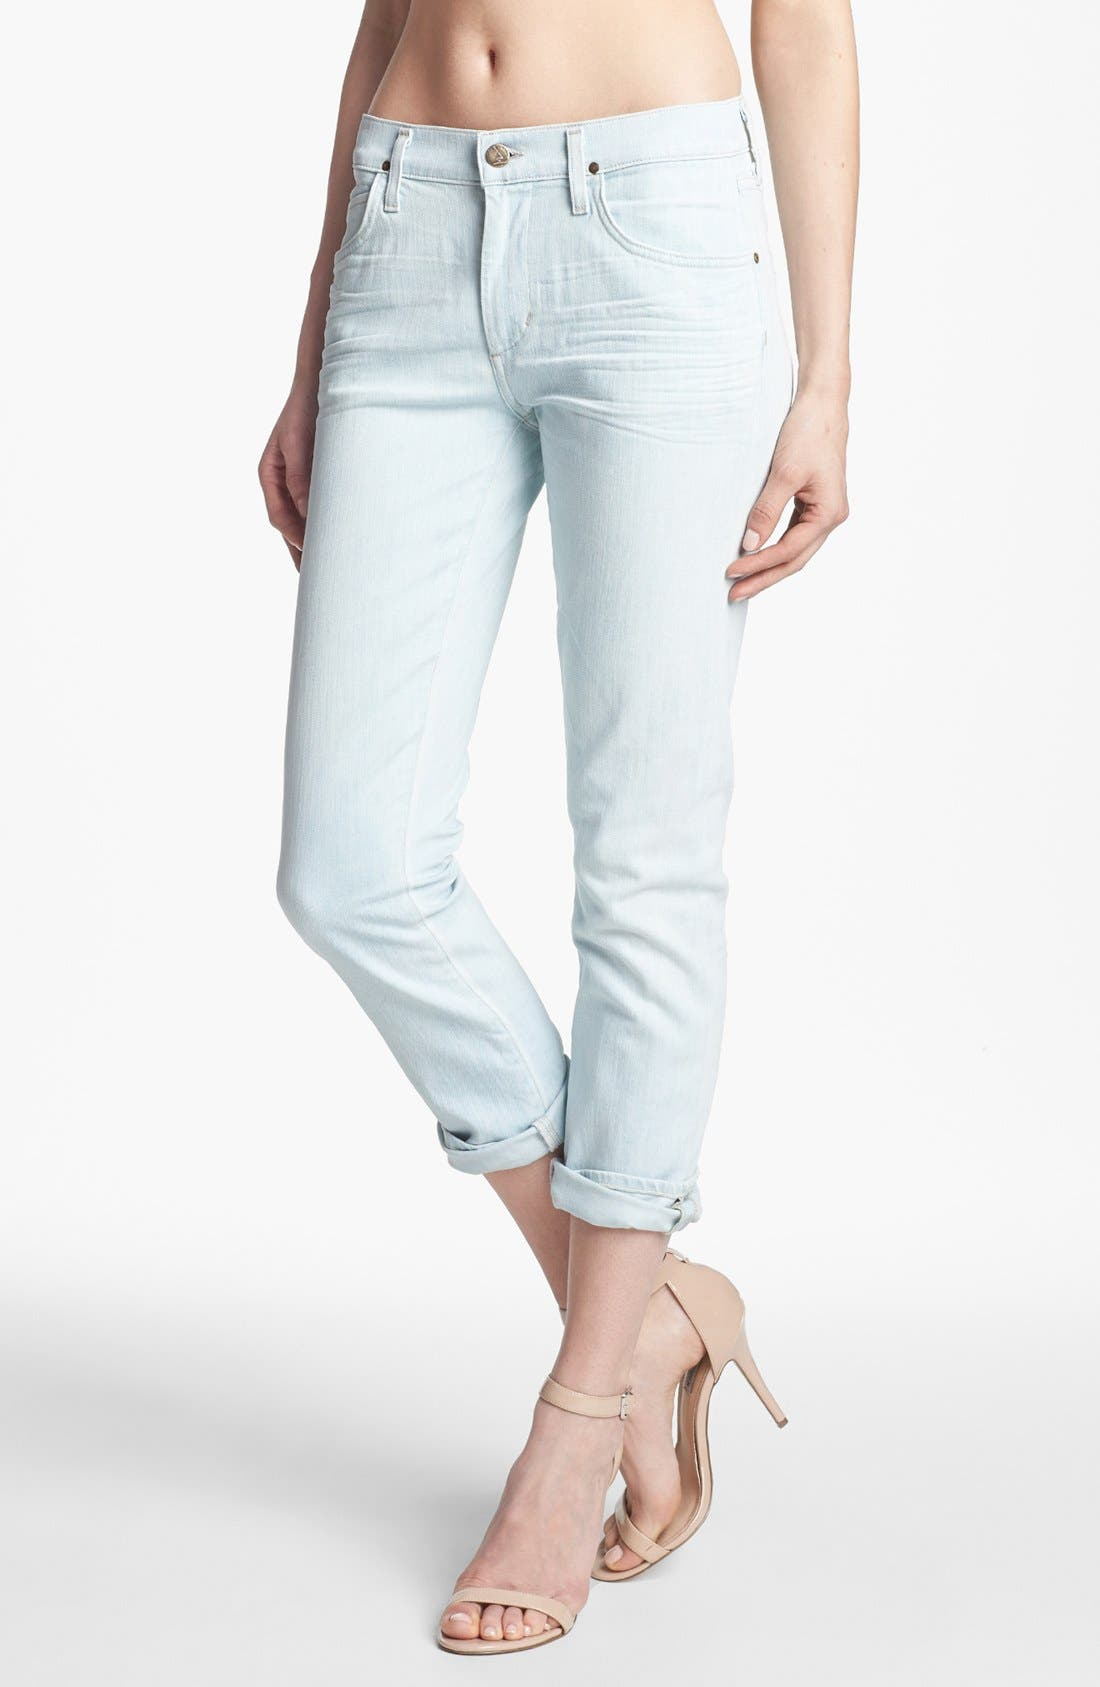 Alternate Image 1 Selected - Citizens of Humanity 'Carlton' Skinny Crop Jeans (Serene)